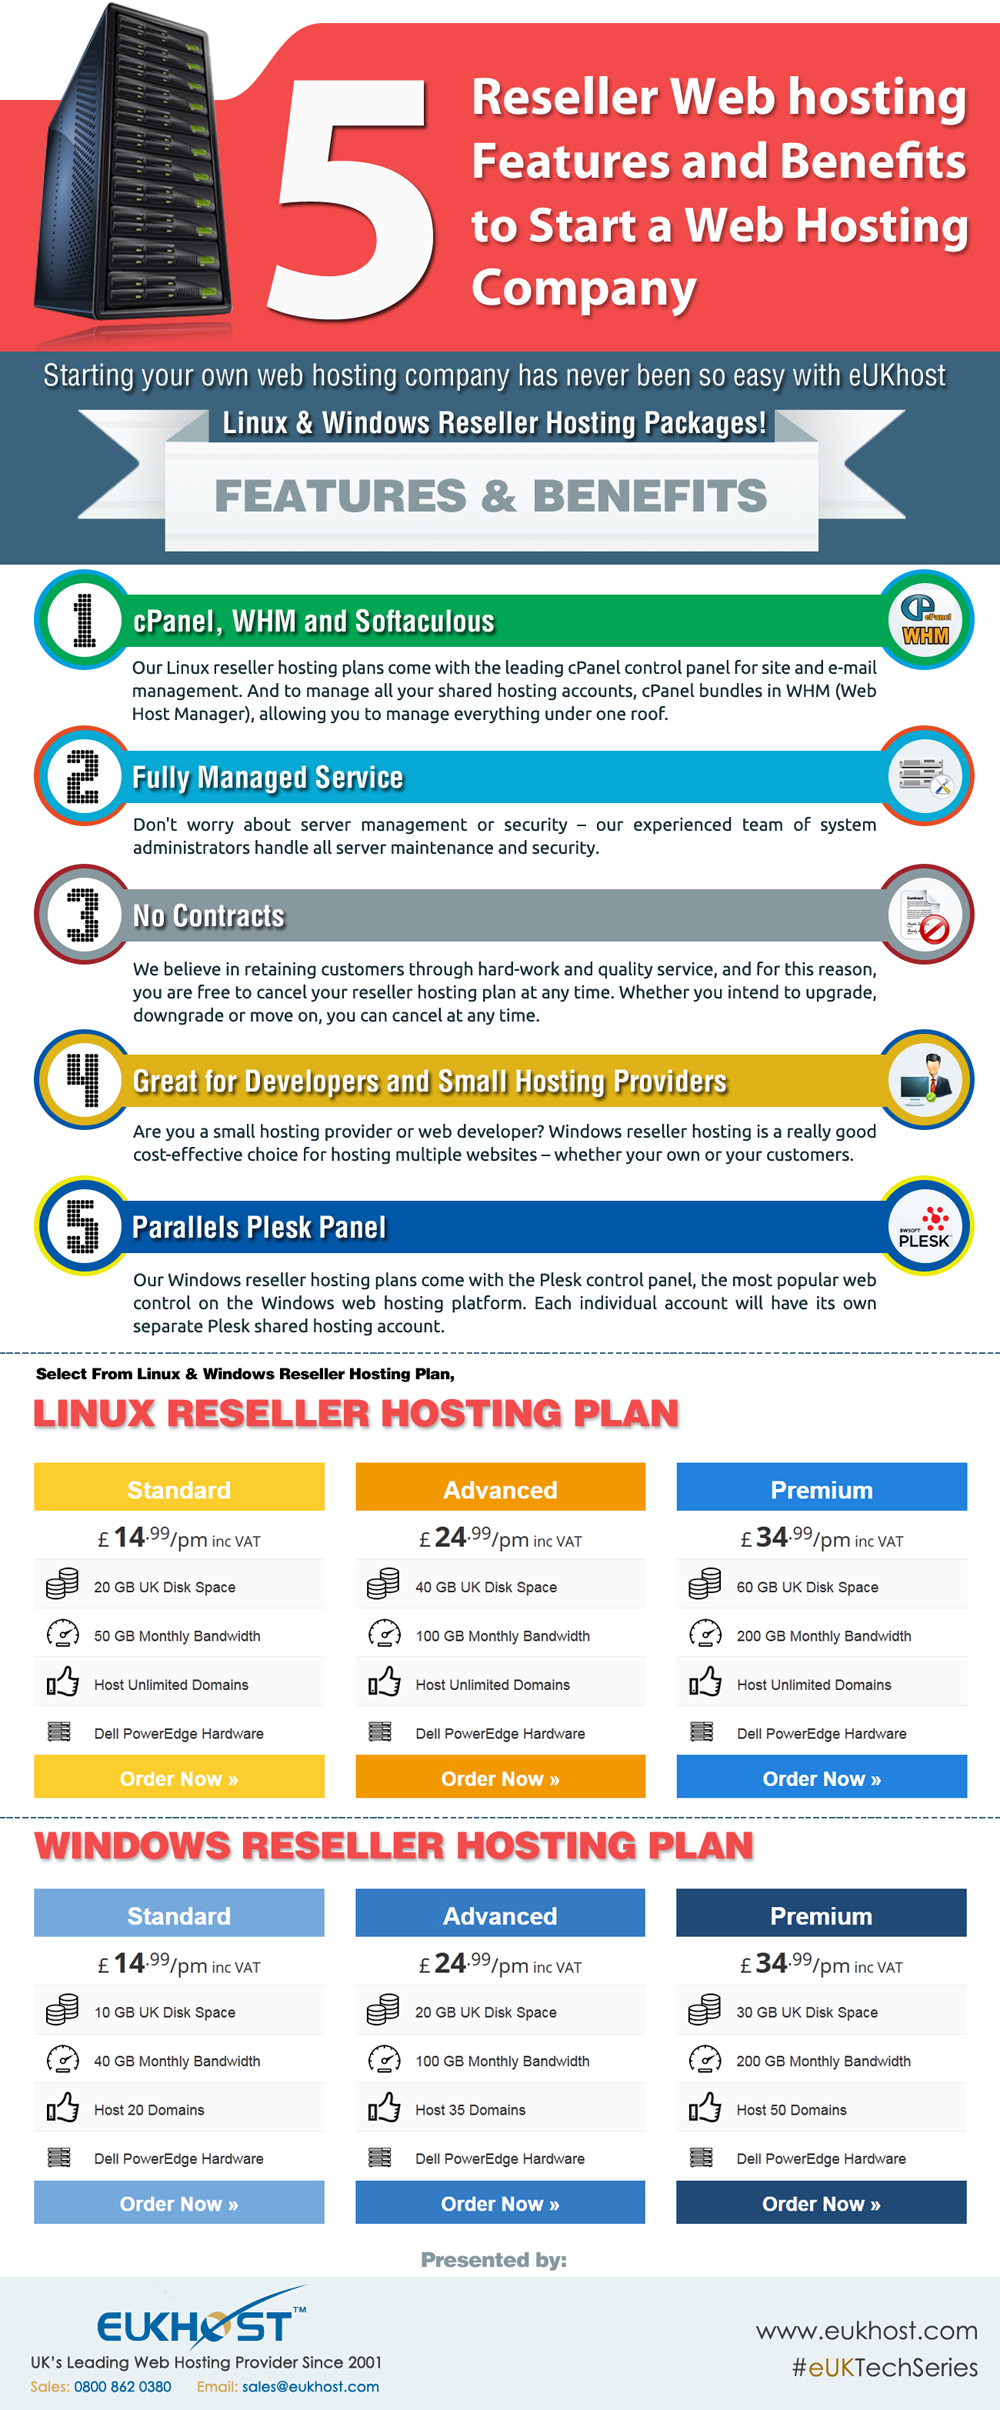 5 Reseller Web Hosting Features and Benefits to Start a Web Hosting Company #infographic #Web Hosting #infographics #Web Hosting Company #Web Hosting Features #Reseller Web Hosting #Business